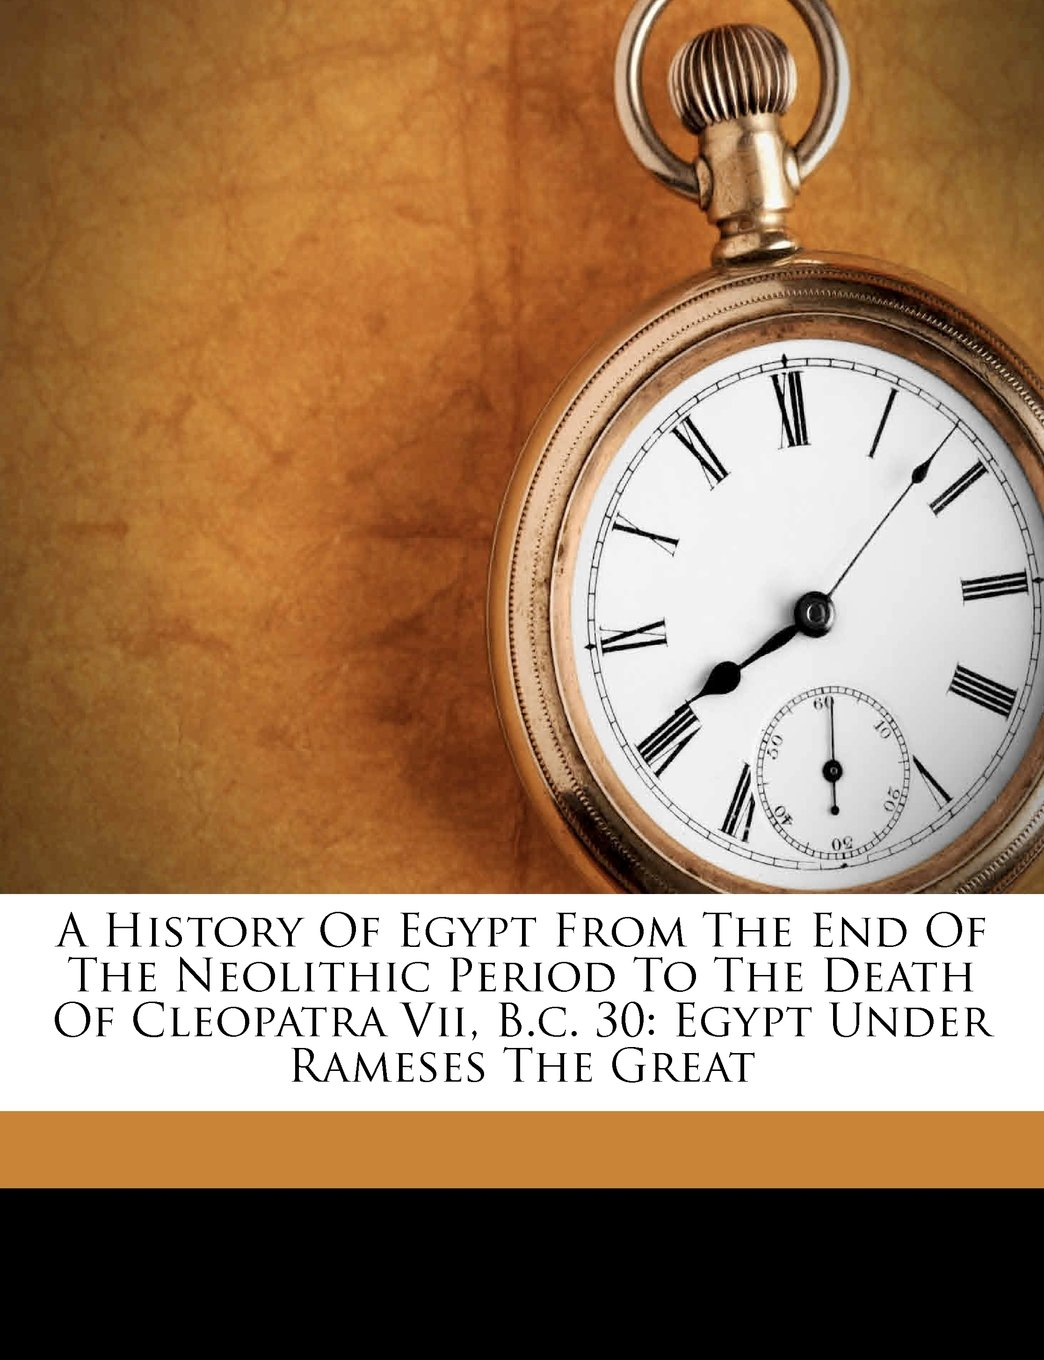 Download A History Of Egypt From The End Of The Neolithic Period To The Death Of Cleopatra Vii, B.c. 30: Egypt Under Rameses The Great pdf